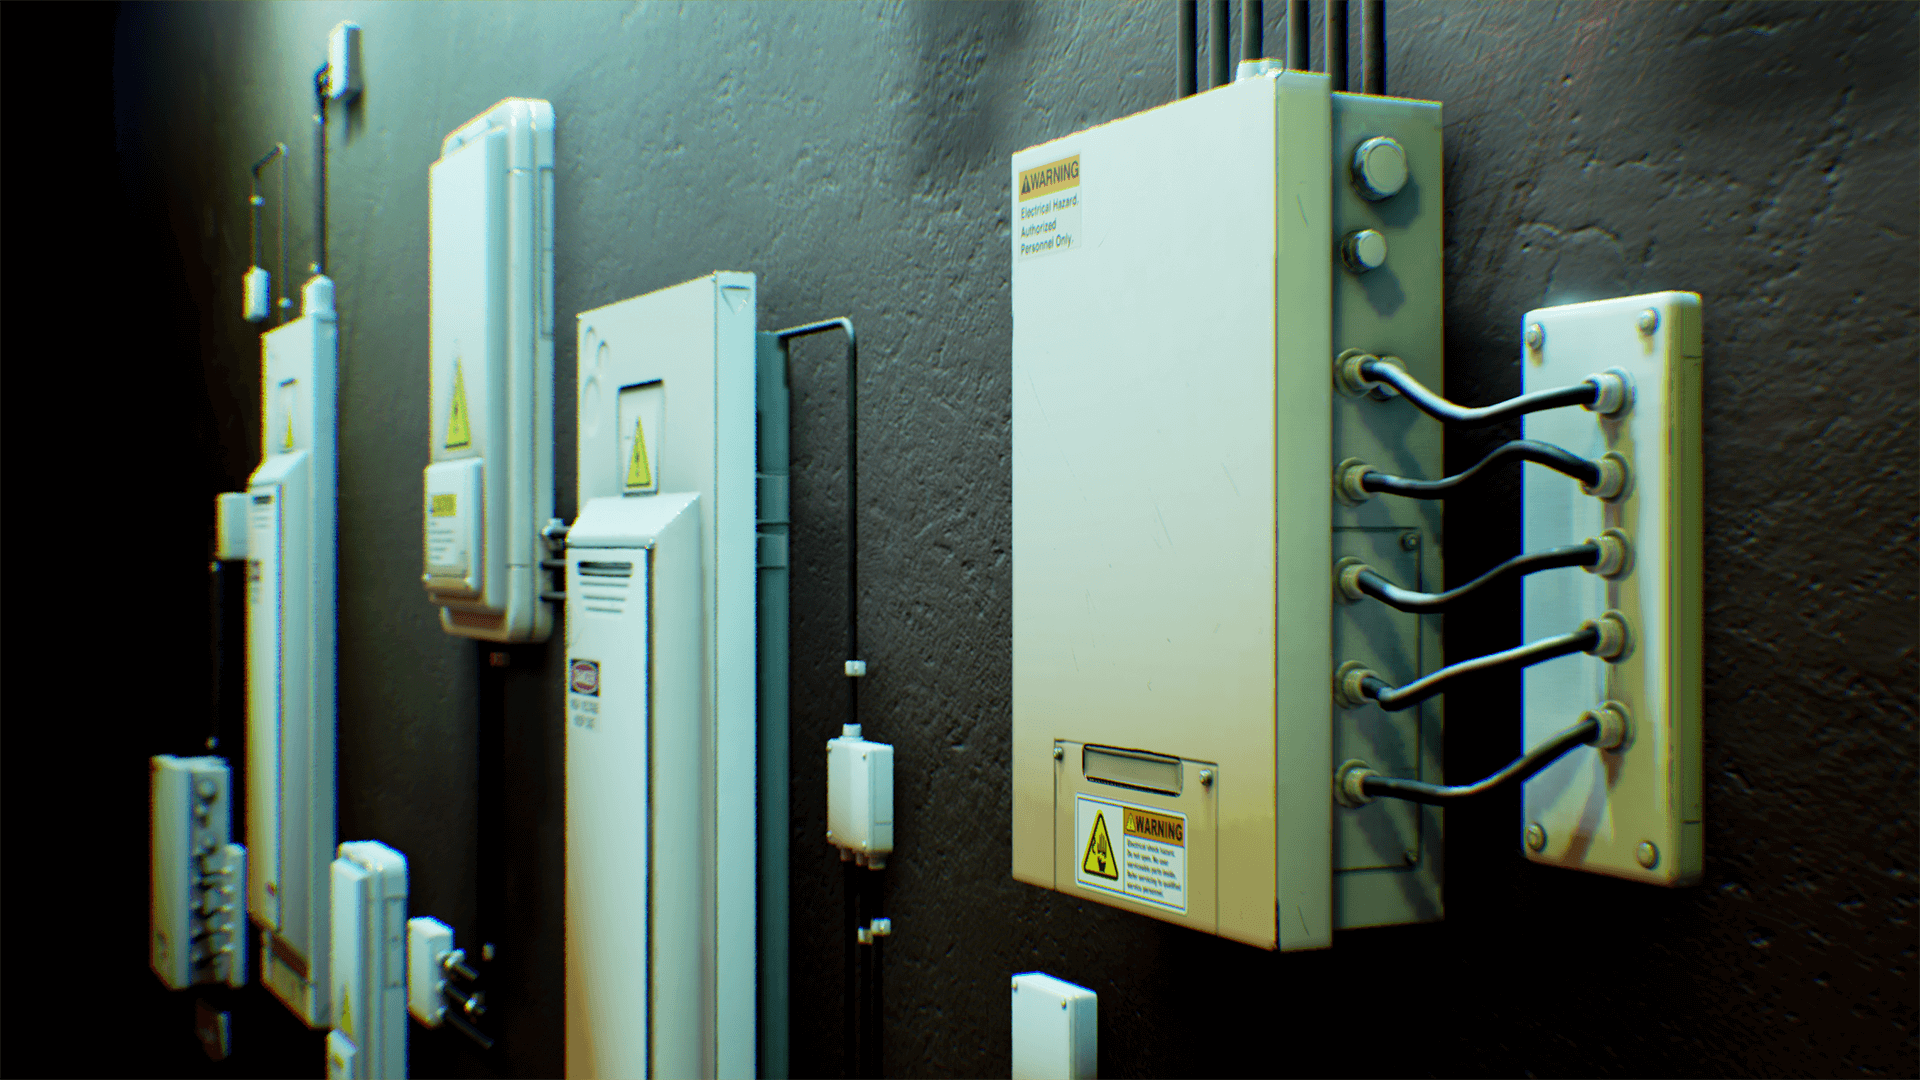 electrical fuse boxes and wires pack by matima studio in props - ue4  marketplace